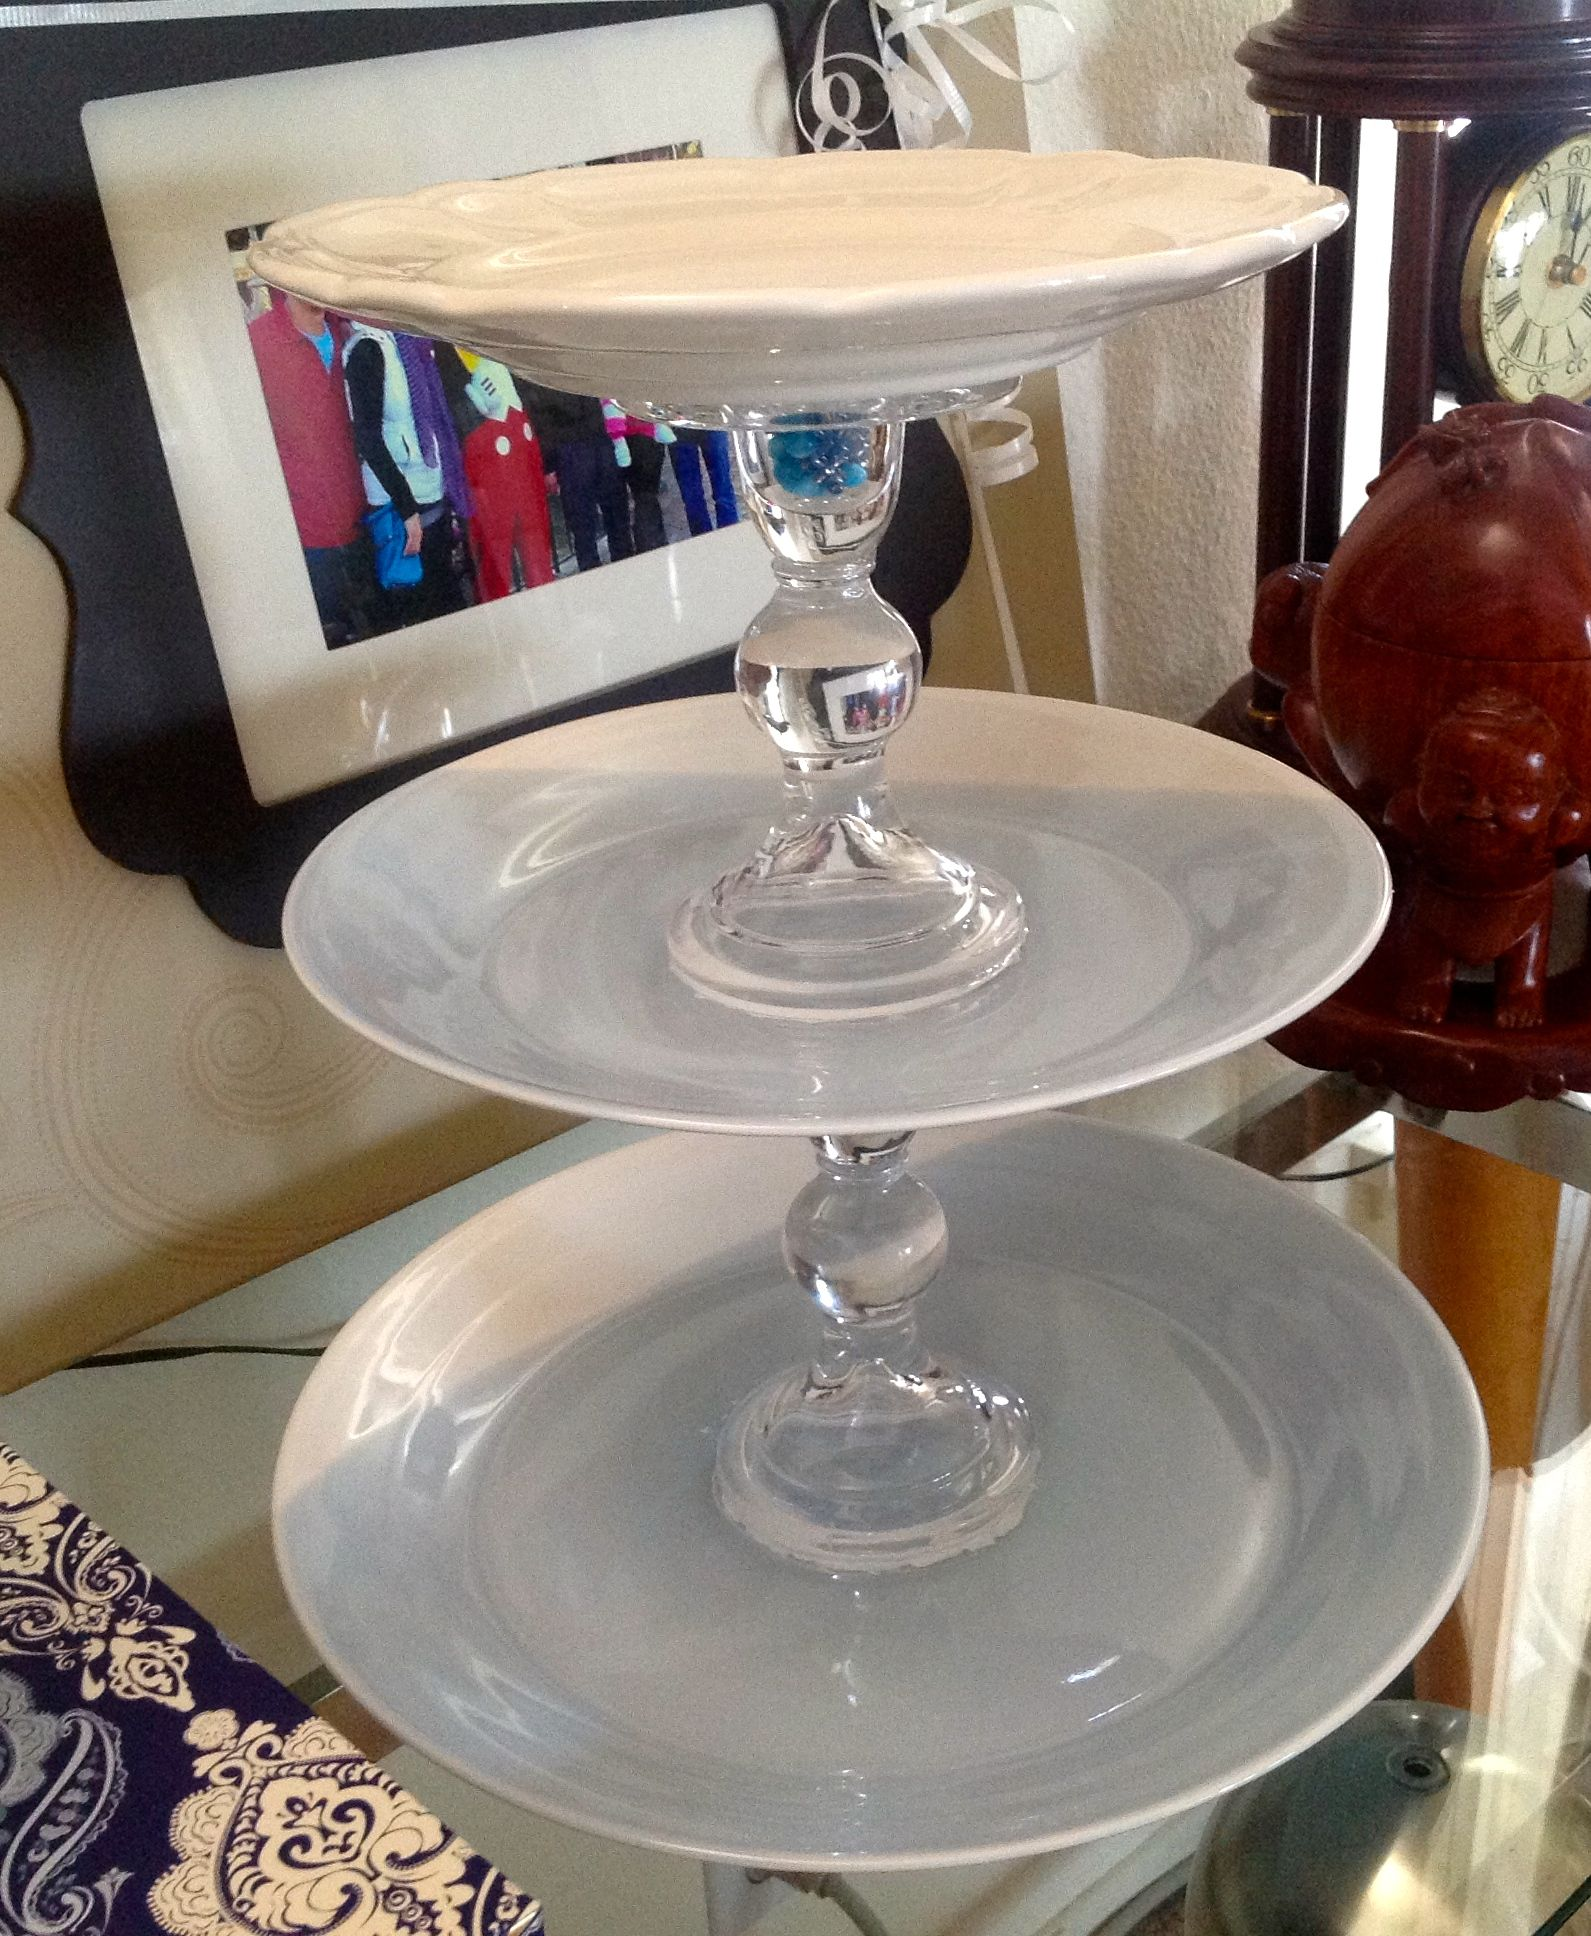 Cake stand / Jewelry stand. My 1st time trying to DIY this and came out pretty nice.